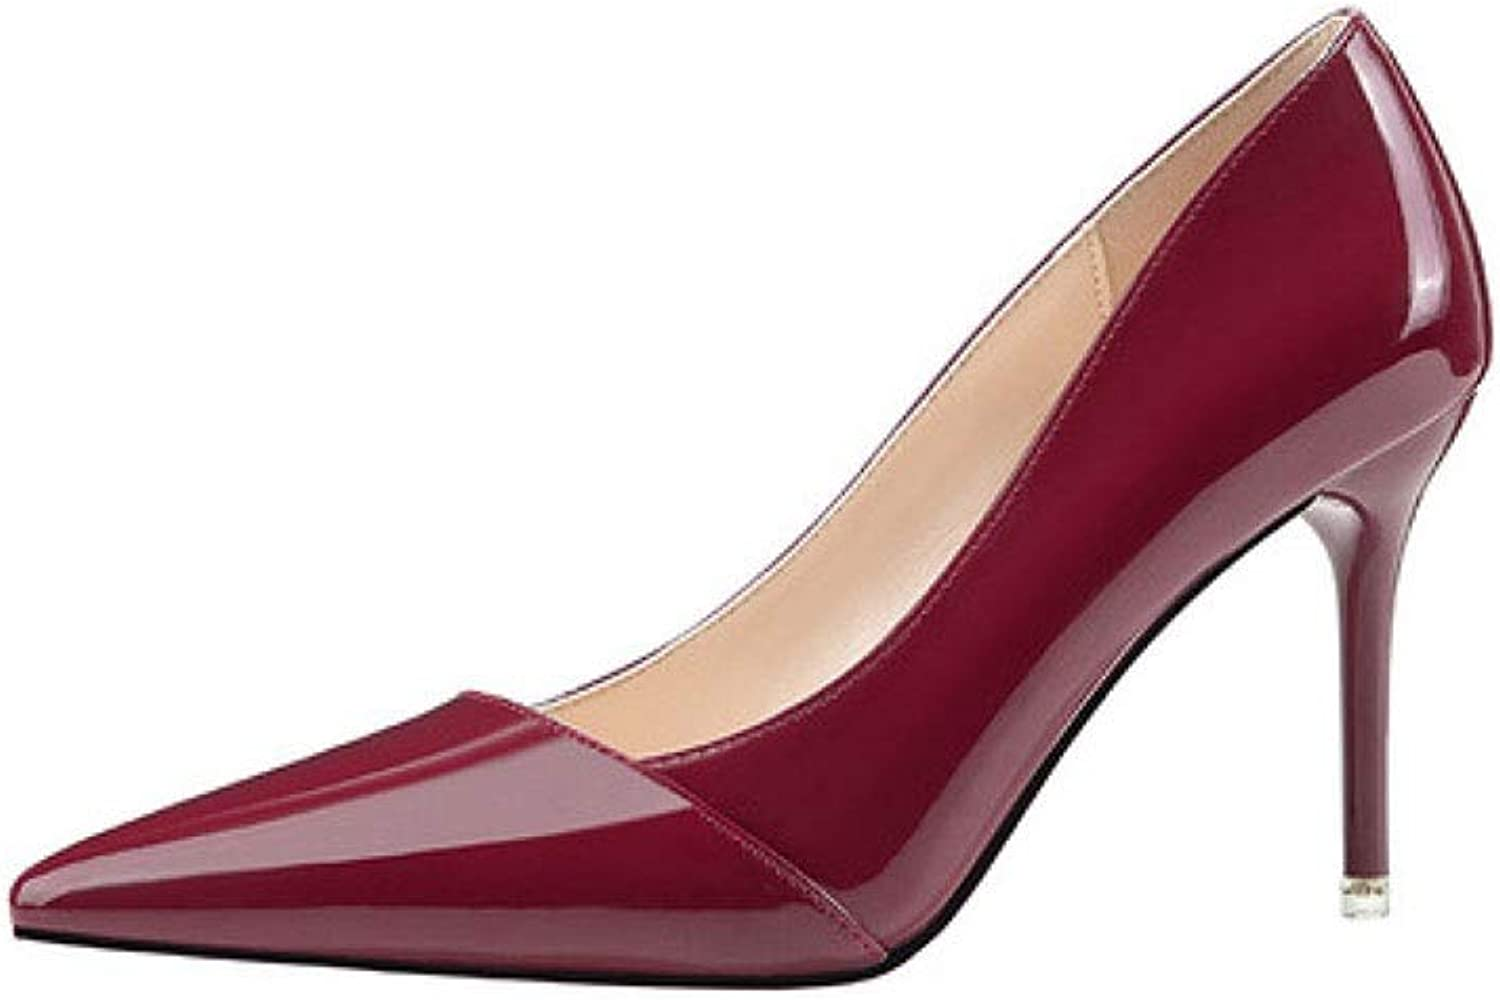 KTYXDE High-Heeled Women's Rubber Fashion Personality Sexy Stiletto Work shoes Spring and Summer 9CM 5 colors Women's shoes (color   D-1, Size   EU39 UK6 CN39)